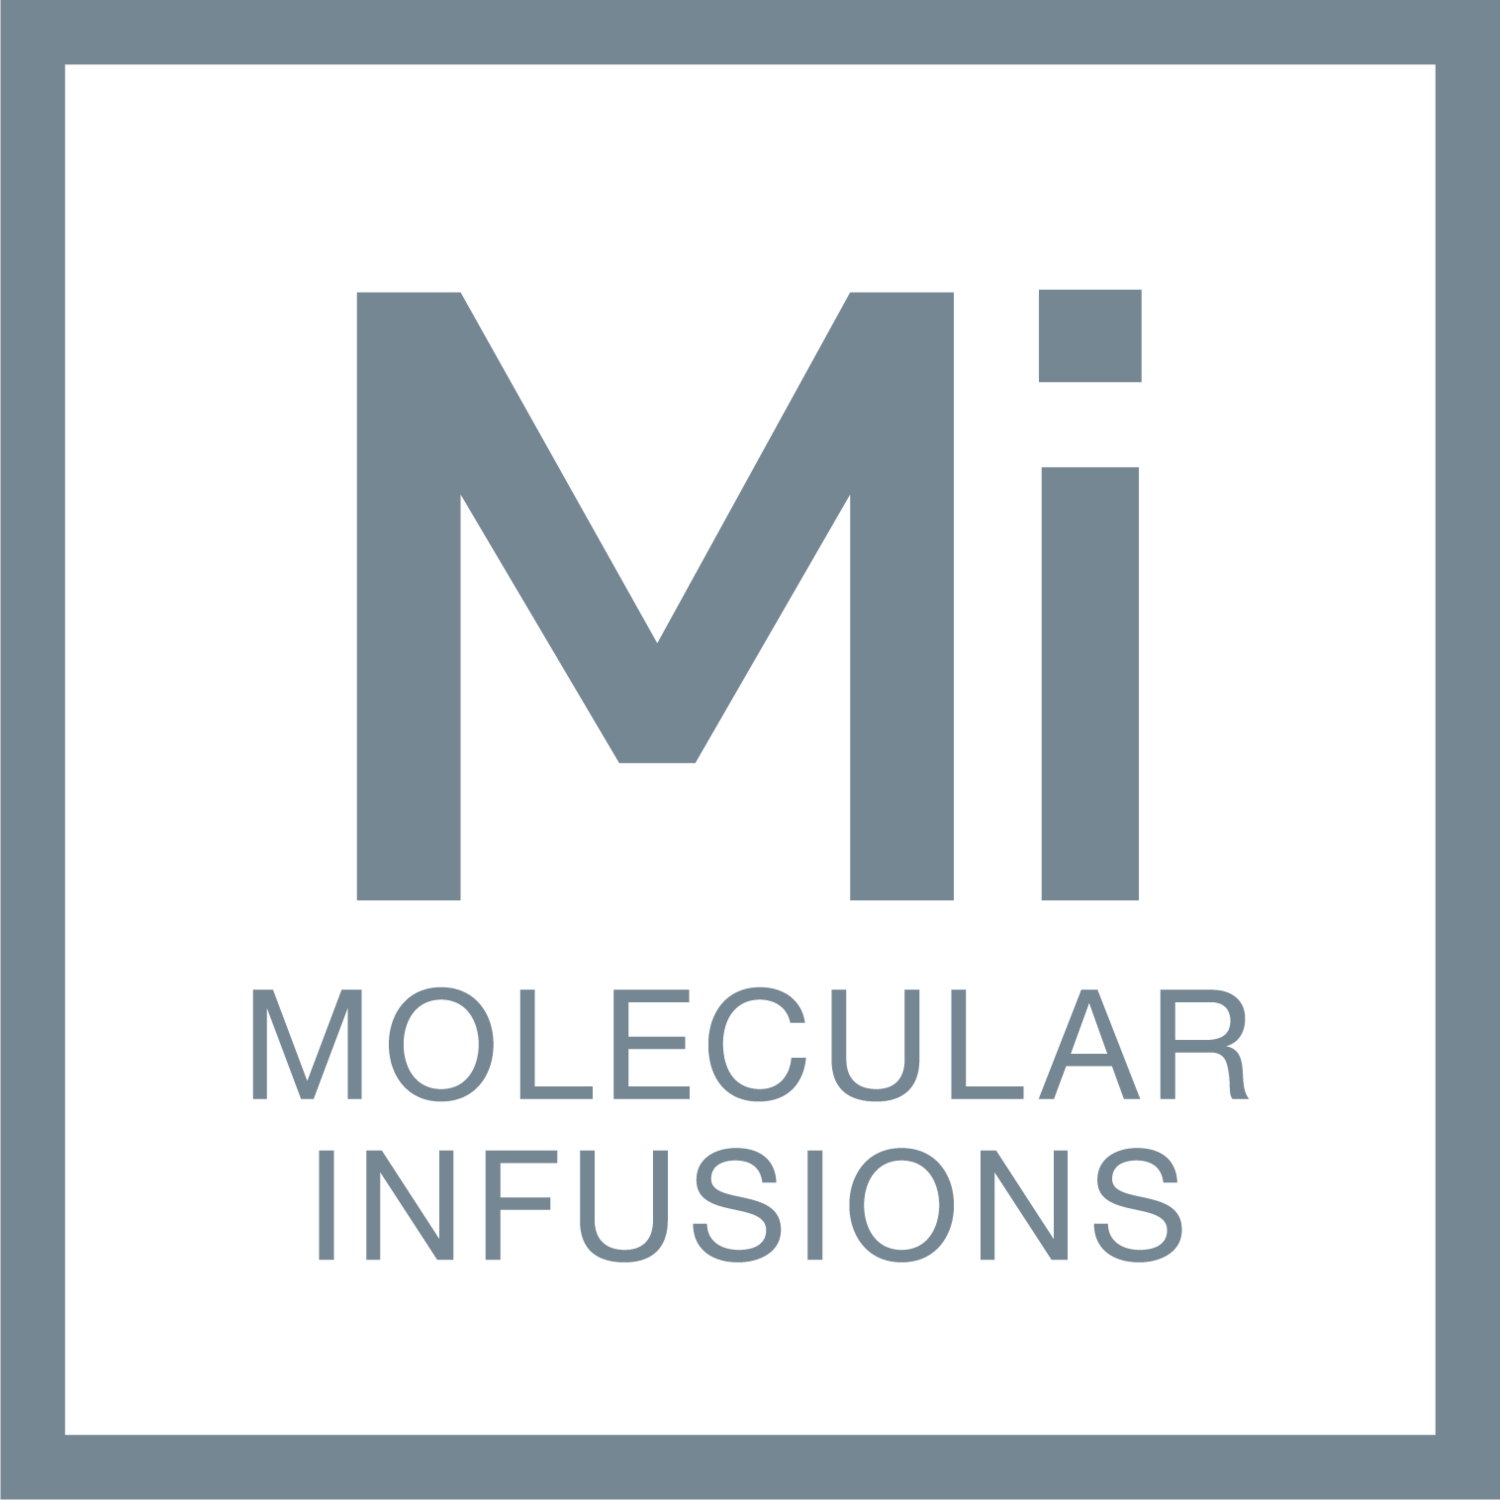 Molecular Infusions